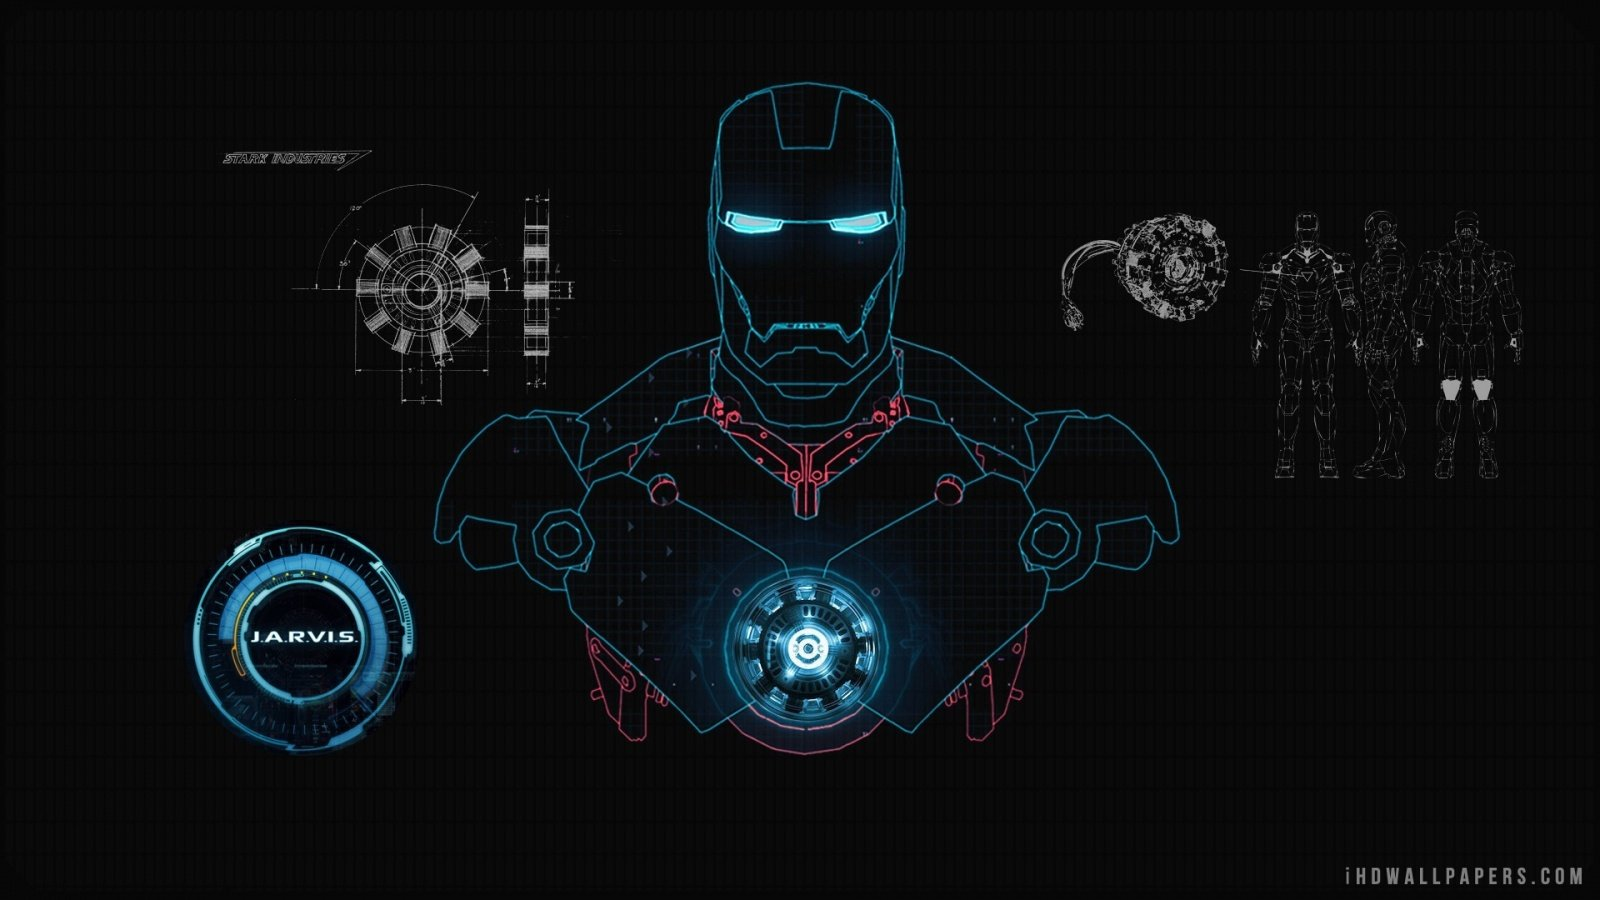 Iron Man JARVIS HD Wallpaper   iHD Wallpapers 1600x900